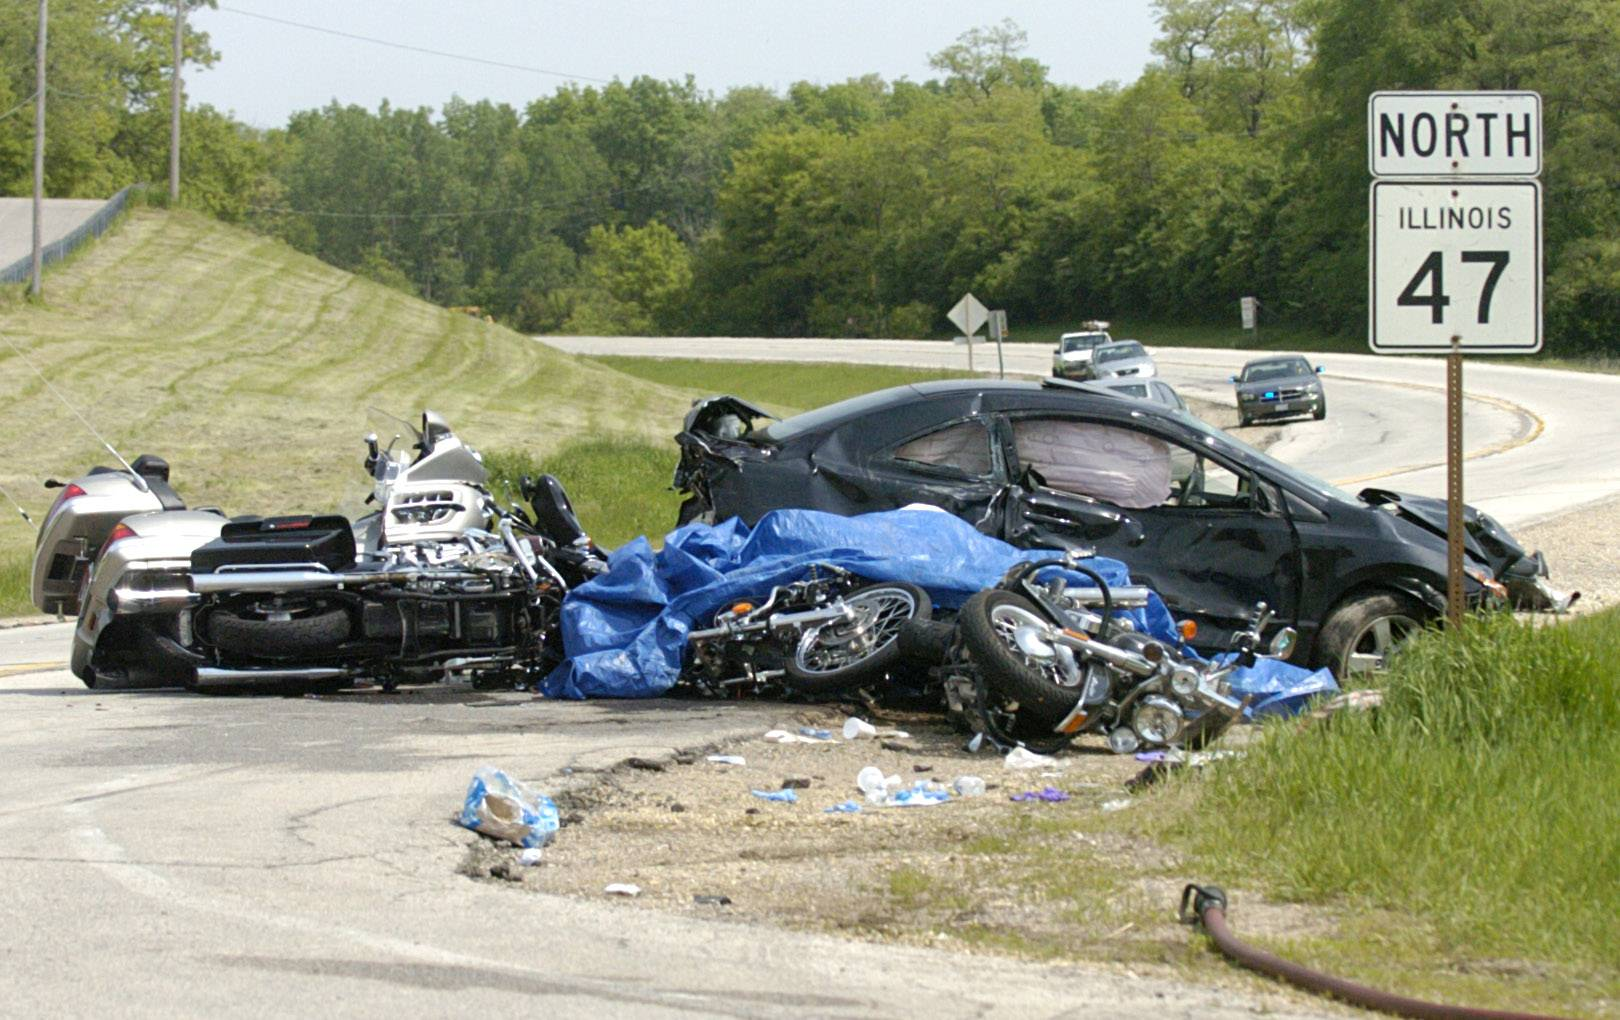 The crash caused by Alia Bernard on Route 47 just north of Smith Road between Elburn and Sugar Grove on May 23, 2009, killed two and injured 12 others, including paralyzing a man from the waist down.